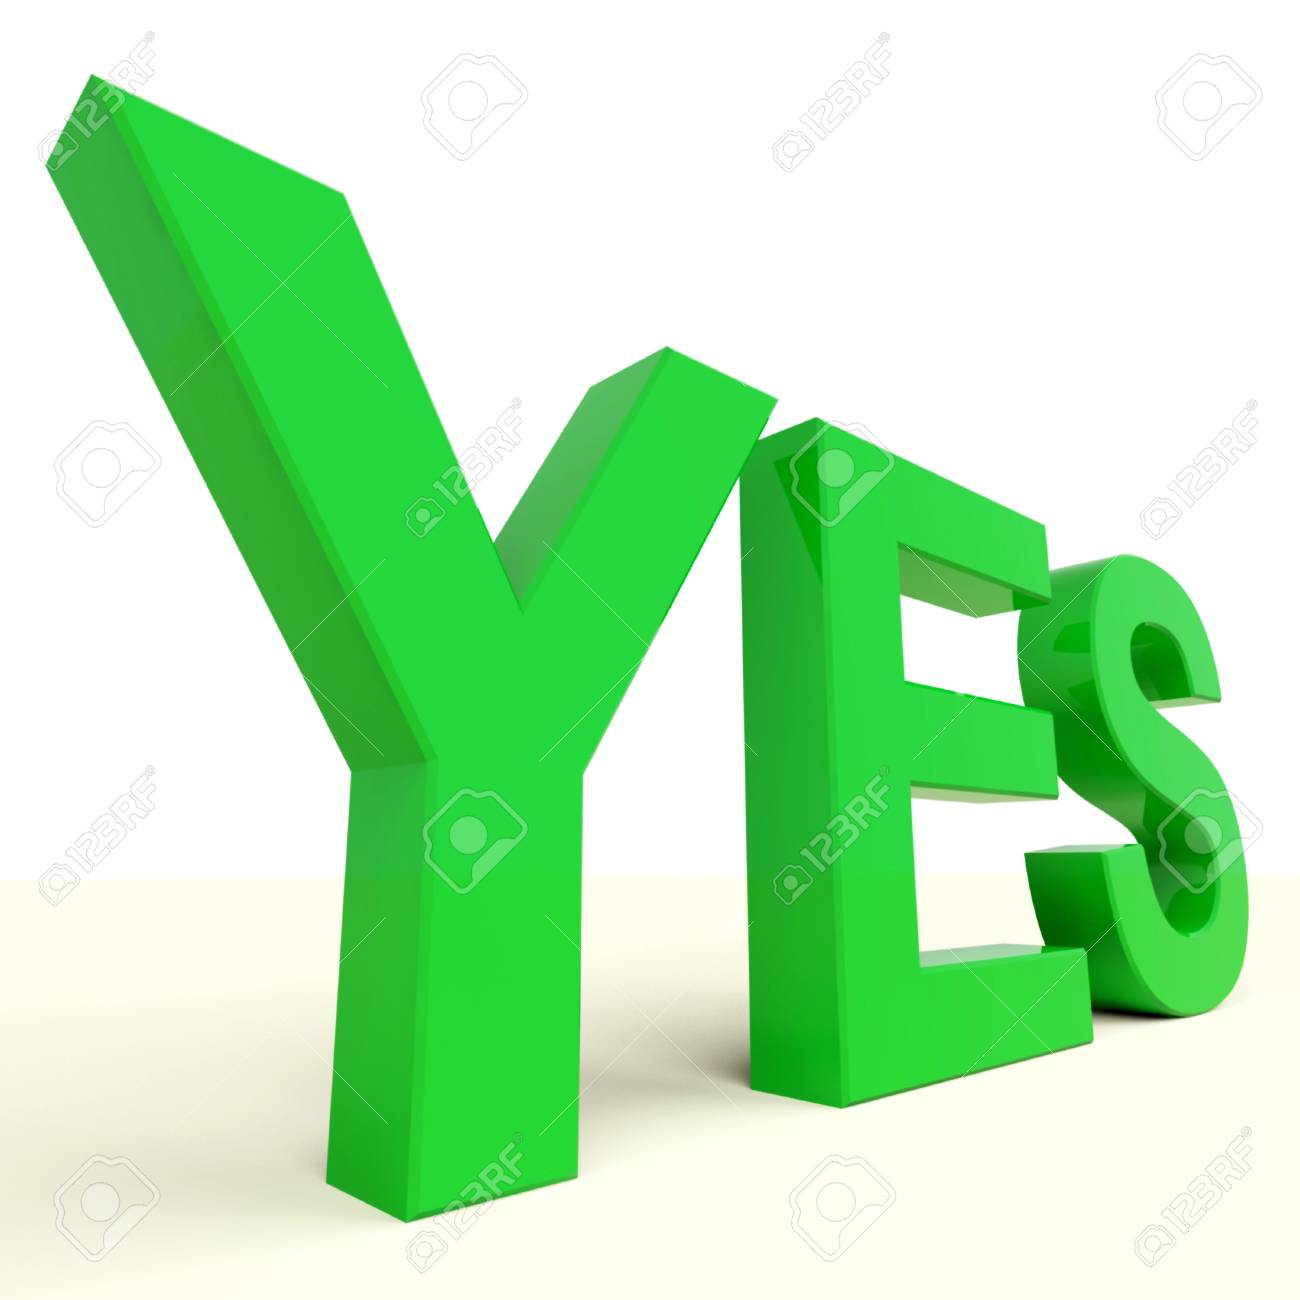 Yes Green Word On Table Showing Approval And Support Stock Photo - 12637002